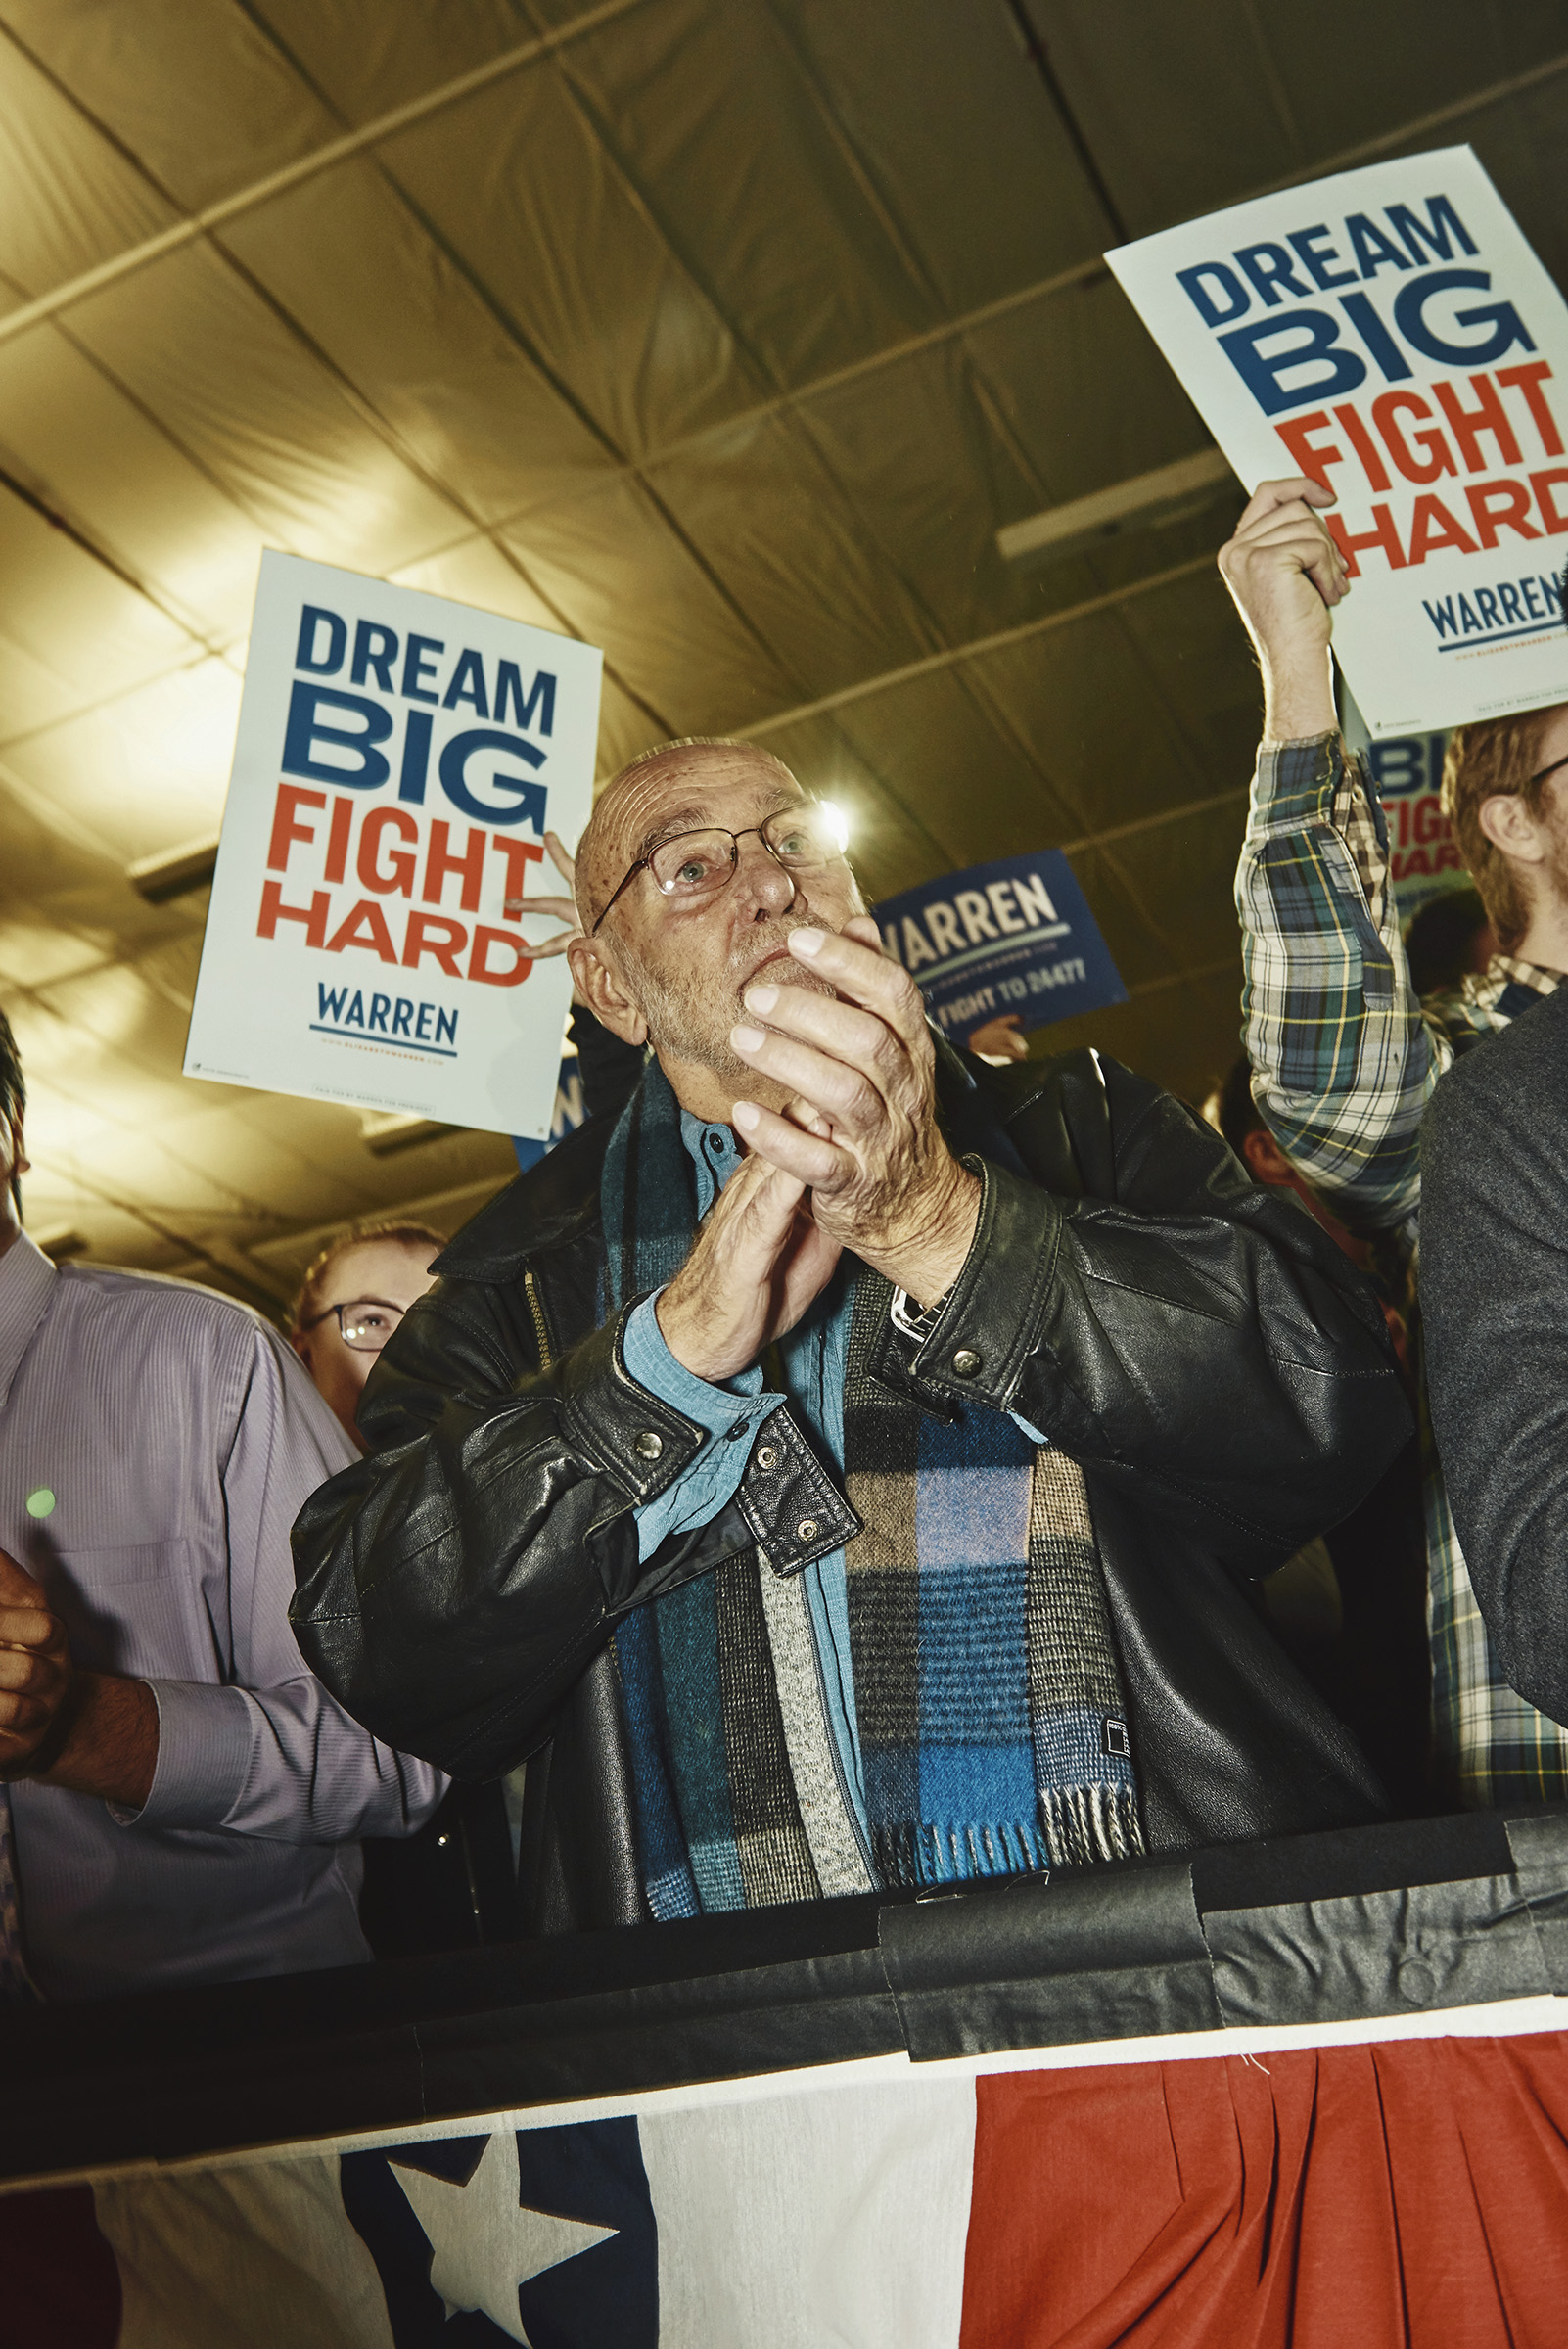 Supporters applaud Sen. Elizabeth Warren at her New Hampshire Election Night Event in Manchester, N.H. on Feb. 12, 2020.